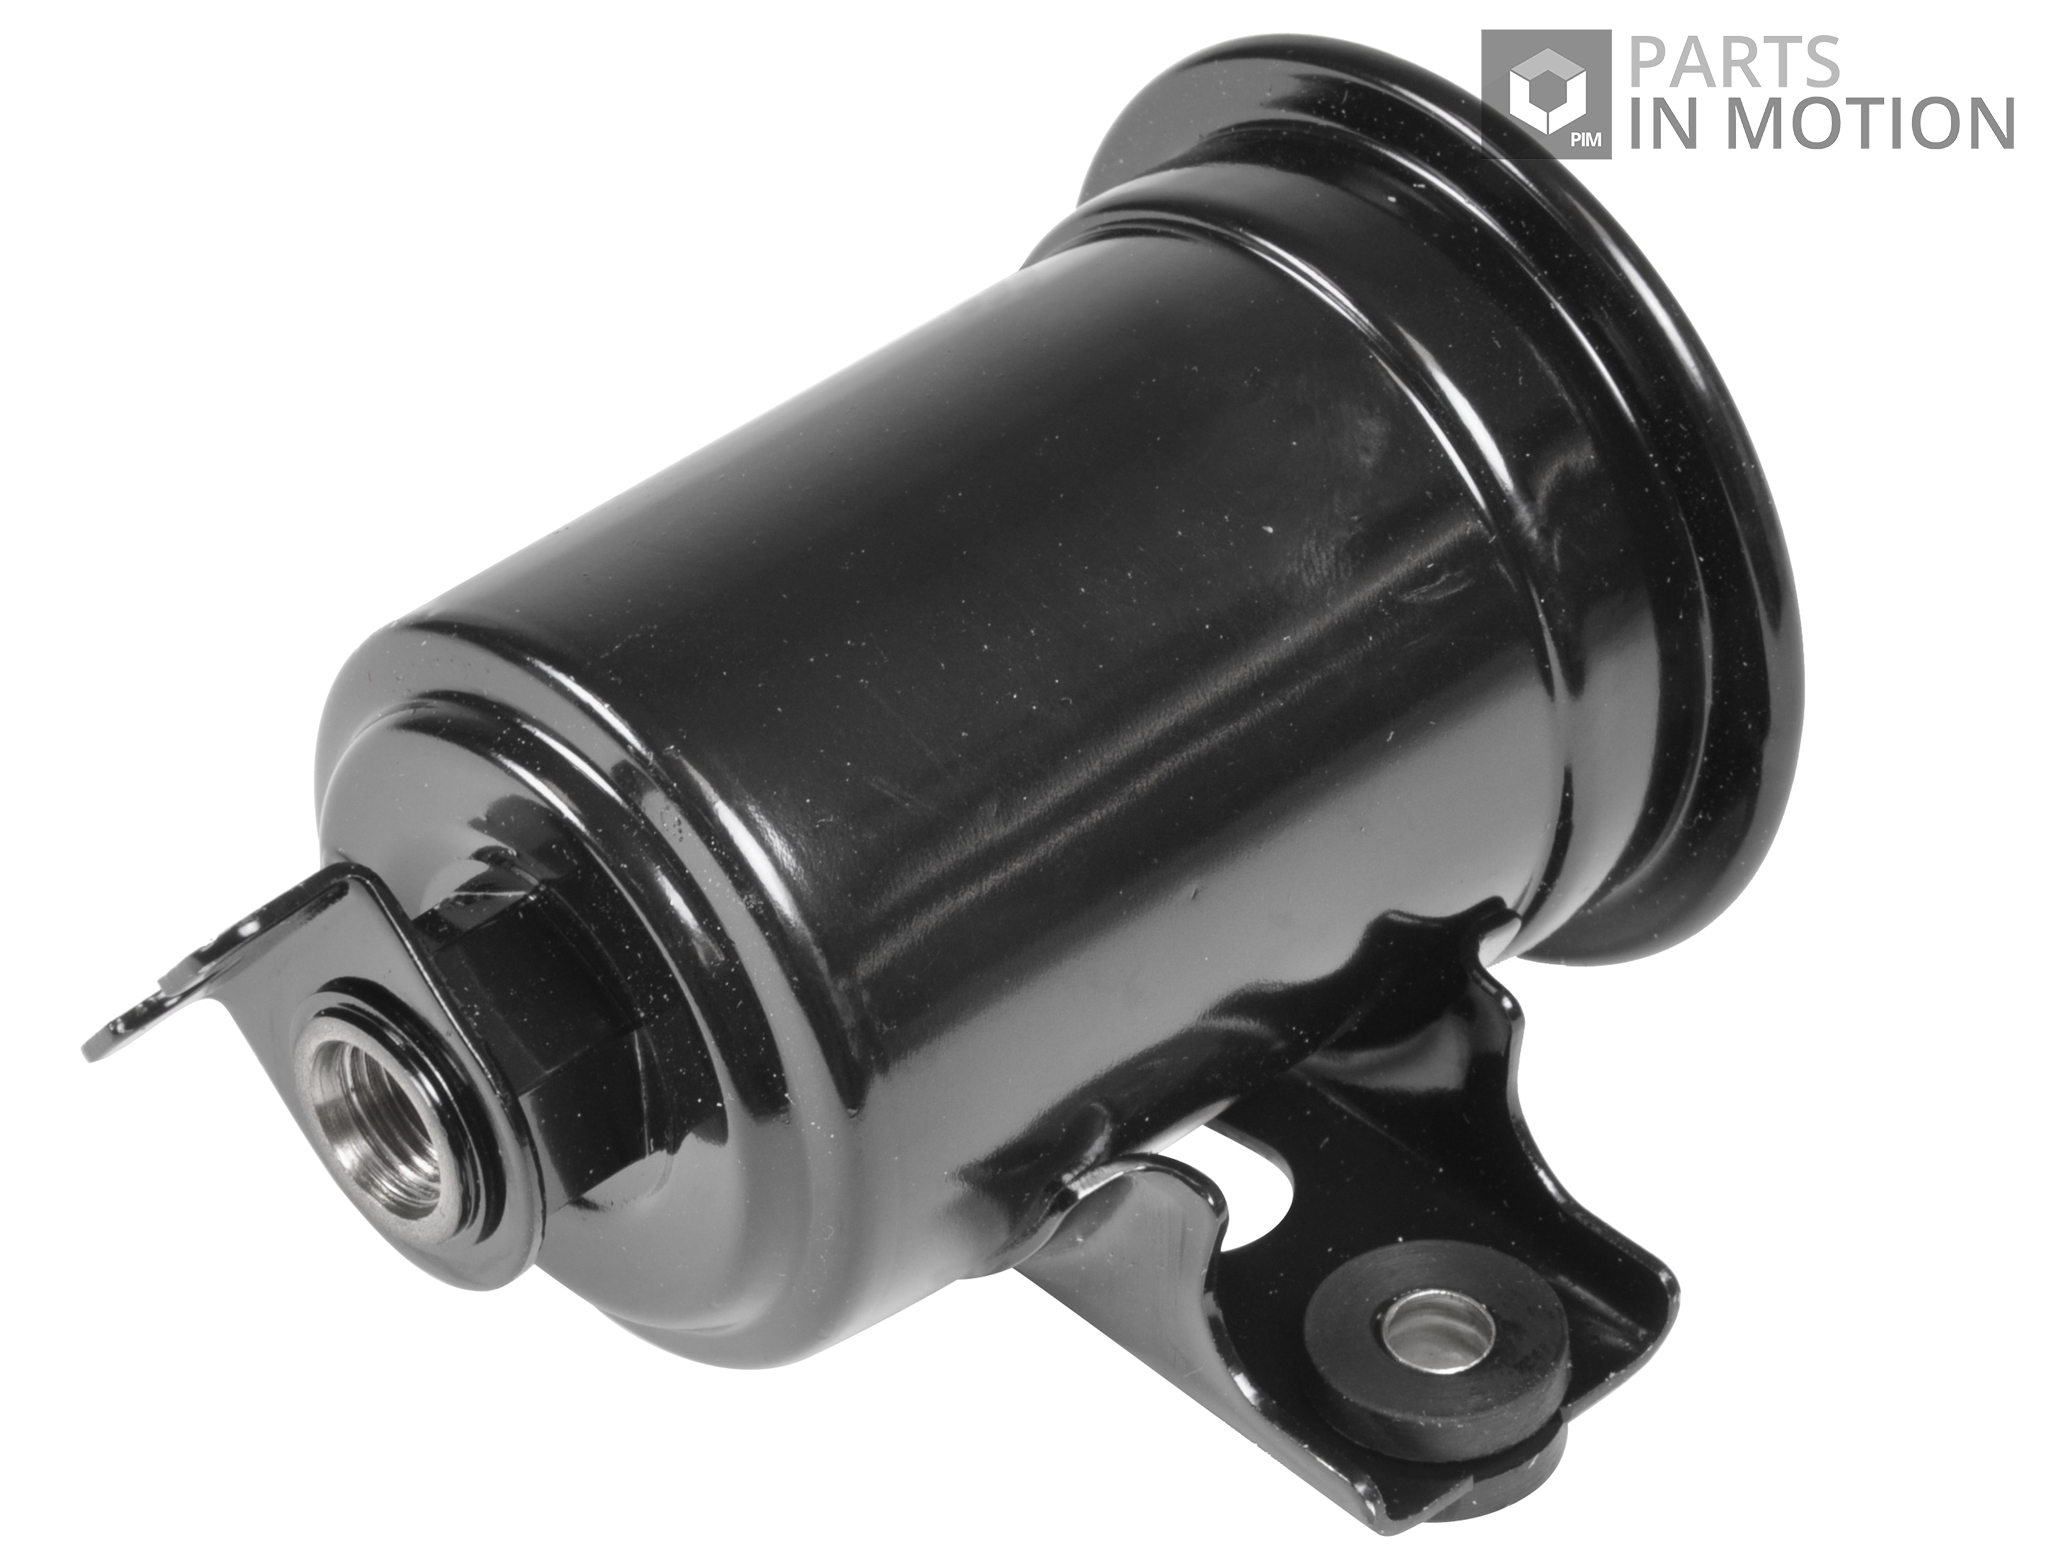 Fuel Filter Fits Toyota Starlet 13 89 To 99 Adl 2330019295 2005 Corolla Location 1 3